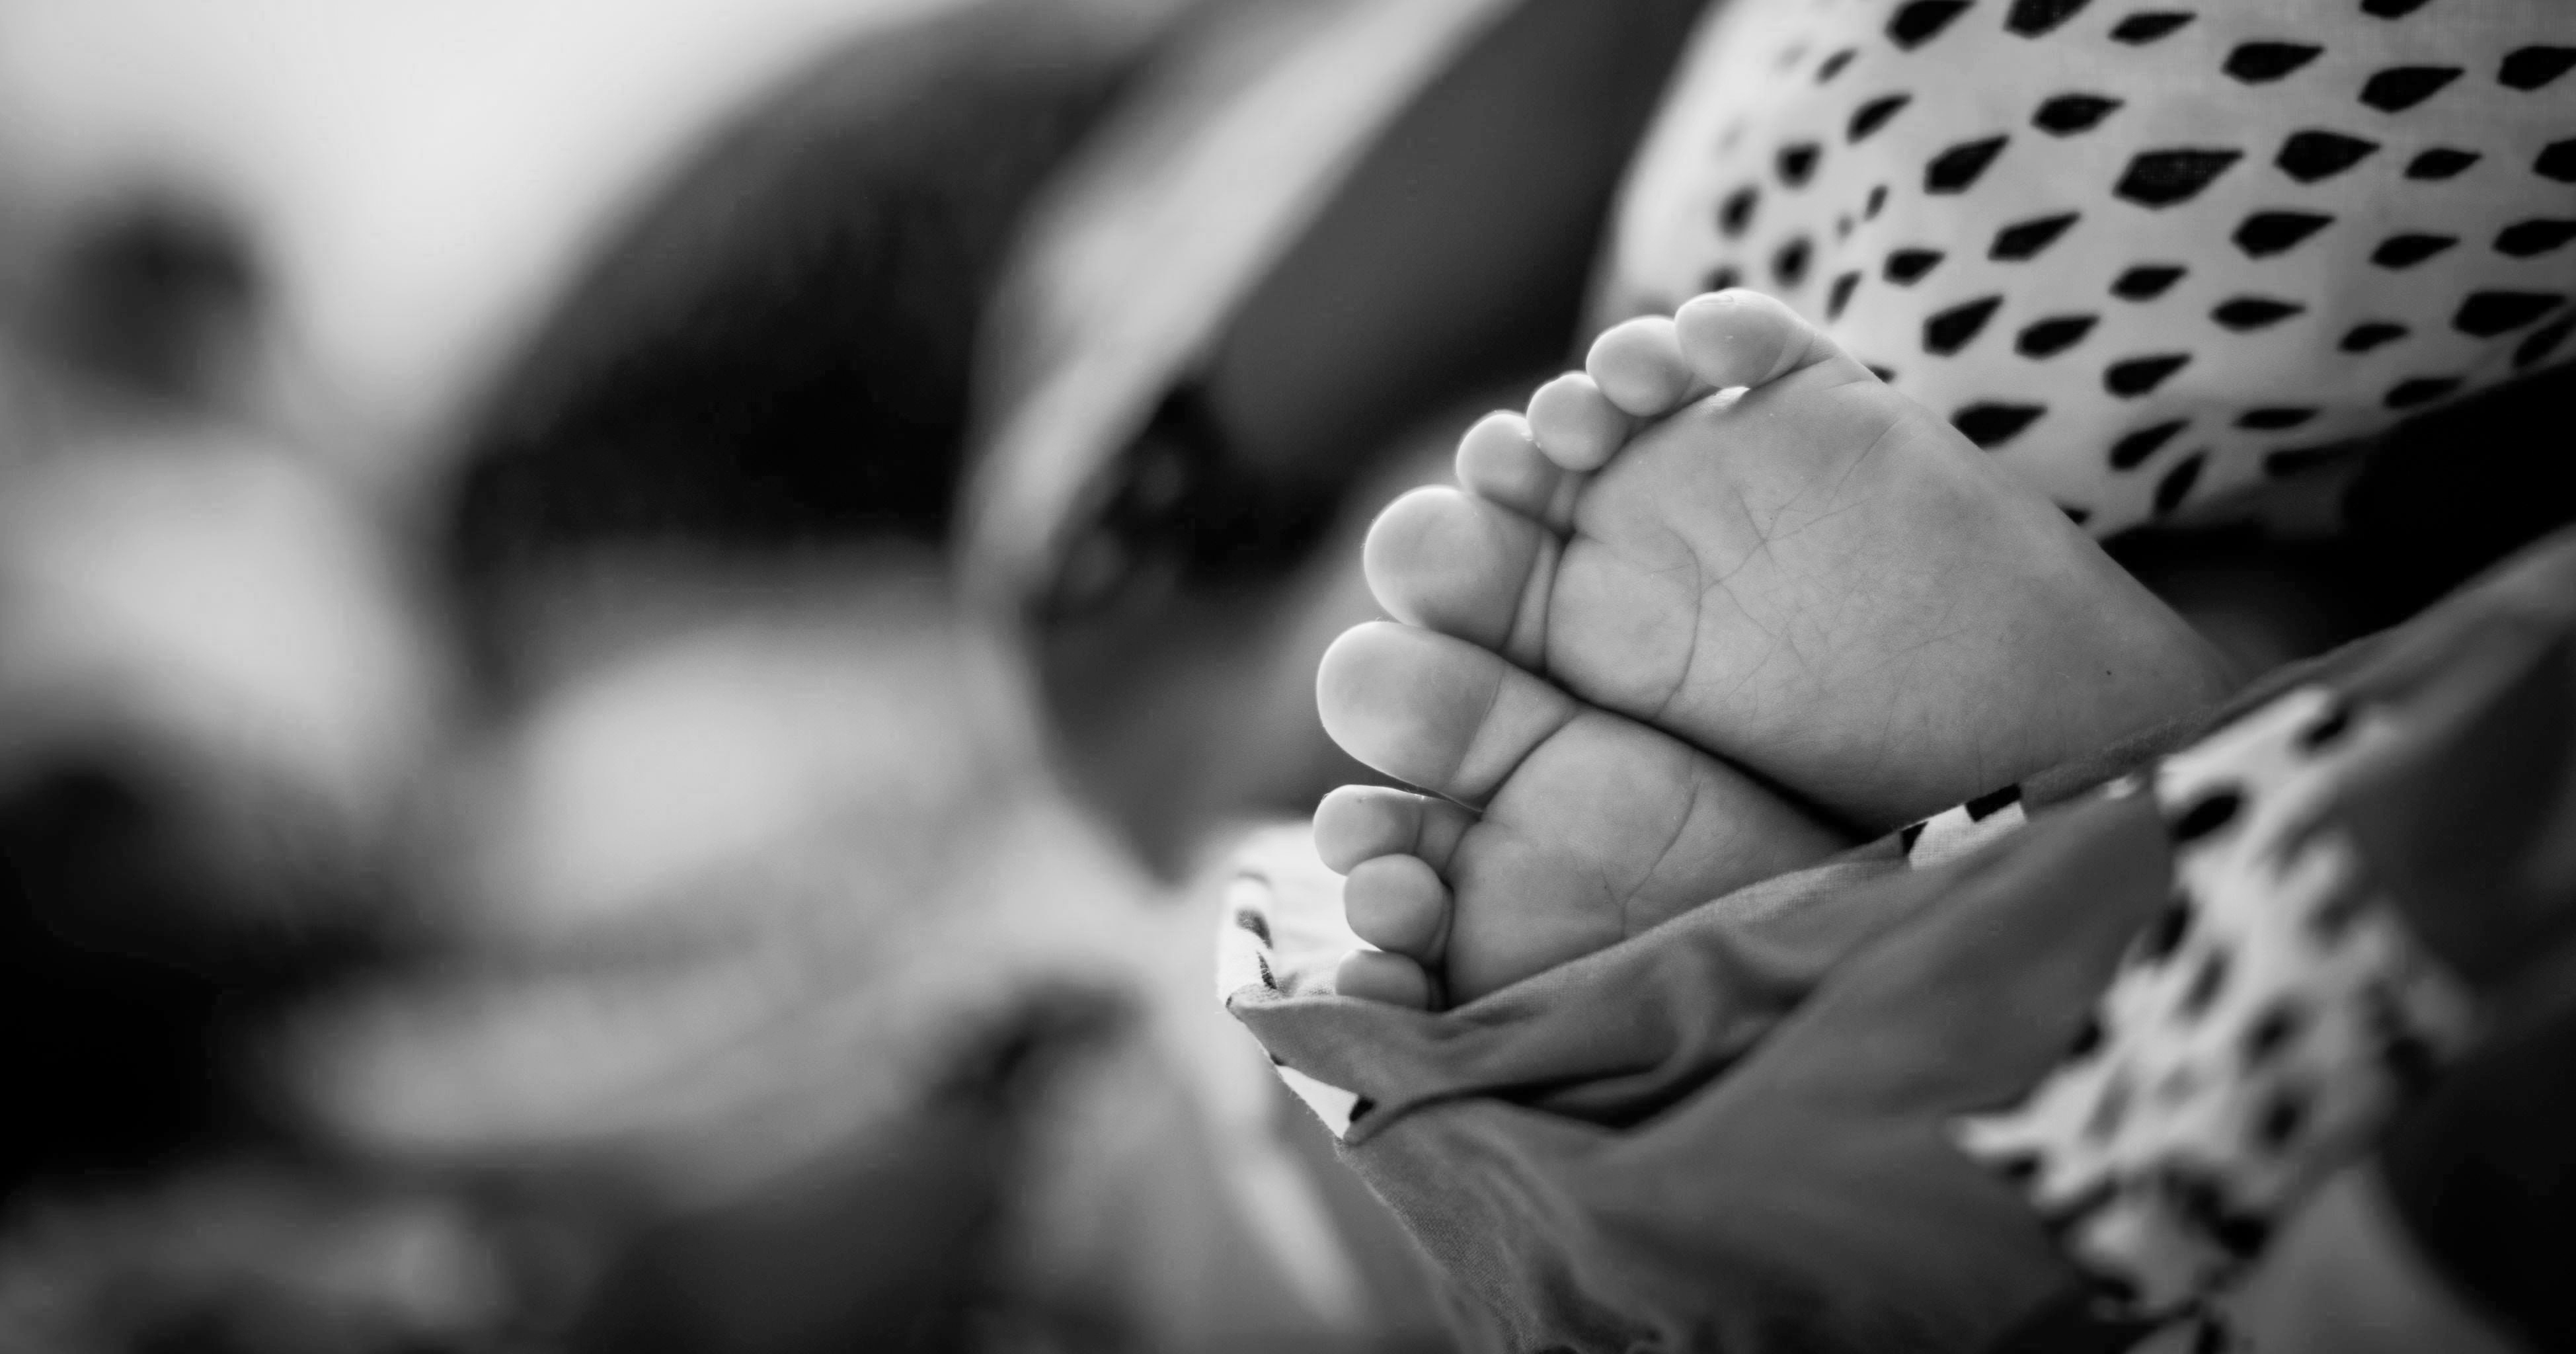 baby-baby-feet-black-and-white-590470